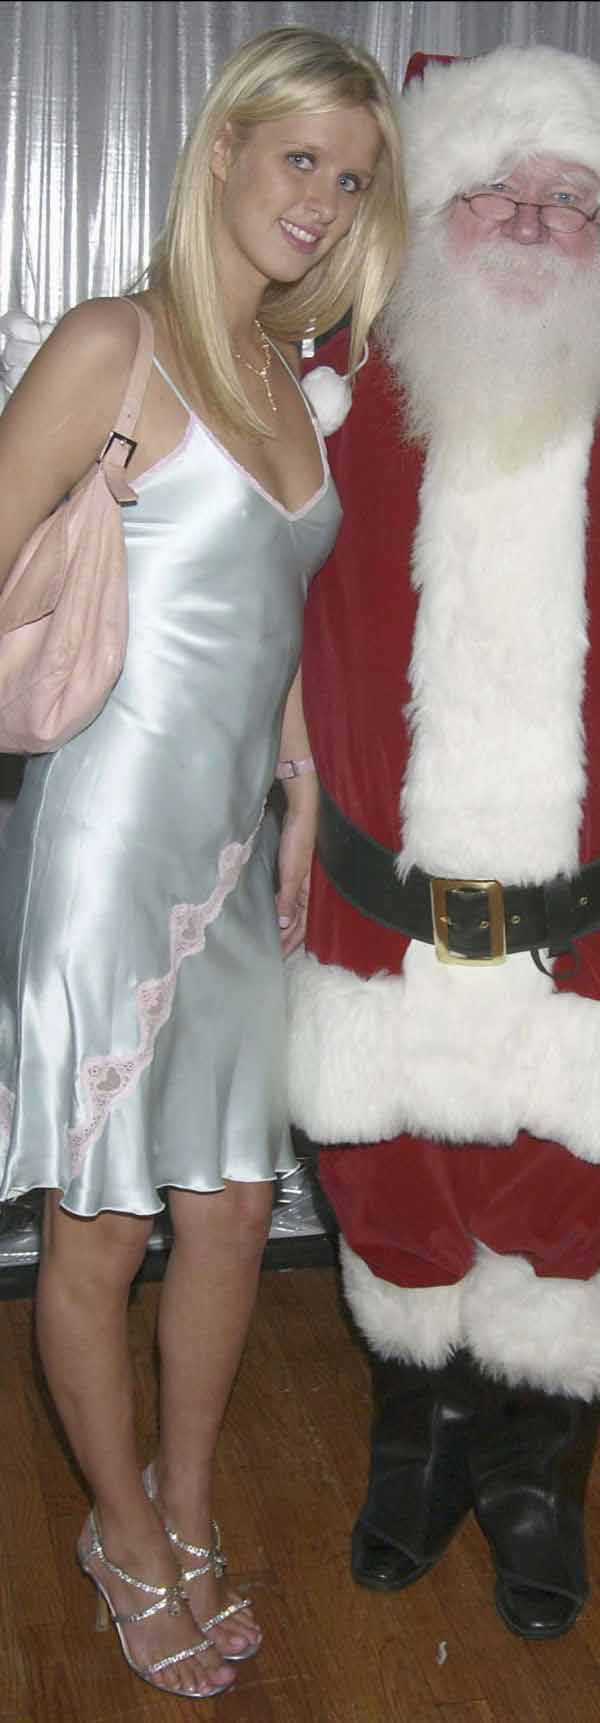 Nicky Hilton See Through Nips And Thong Shot After Giving Santa Her Christmas List. OH! And Pari ...